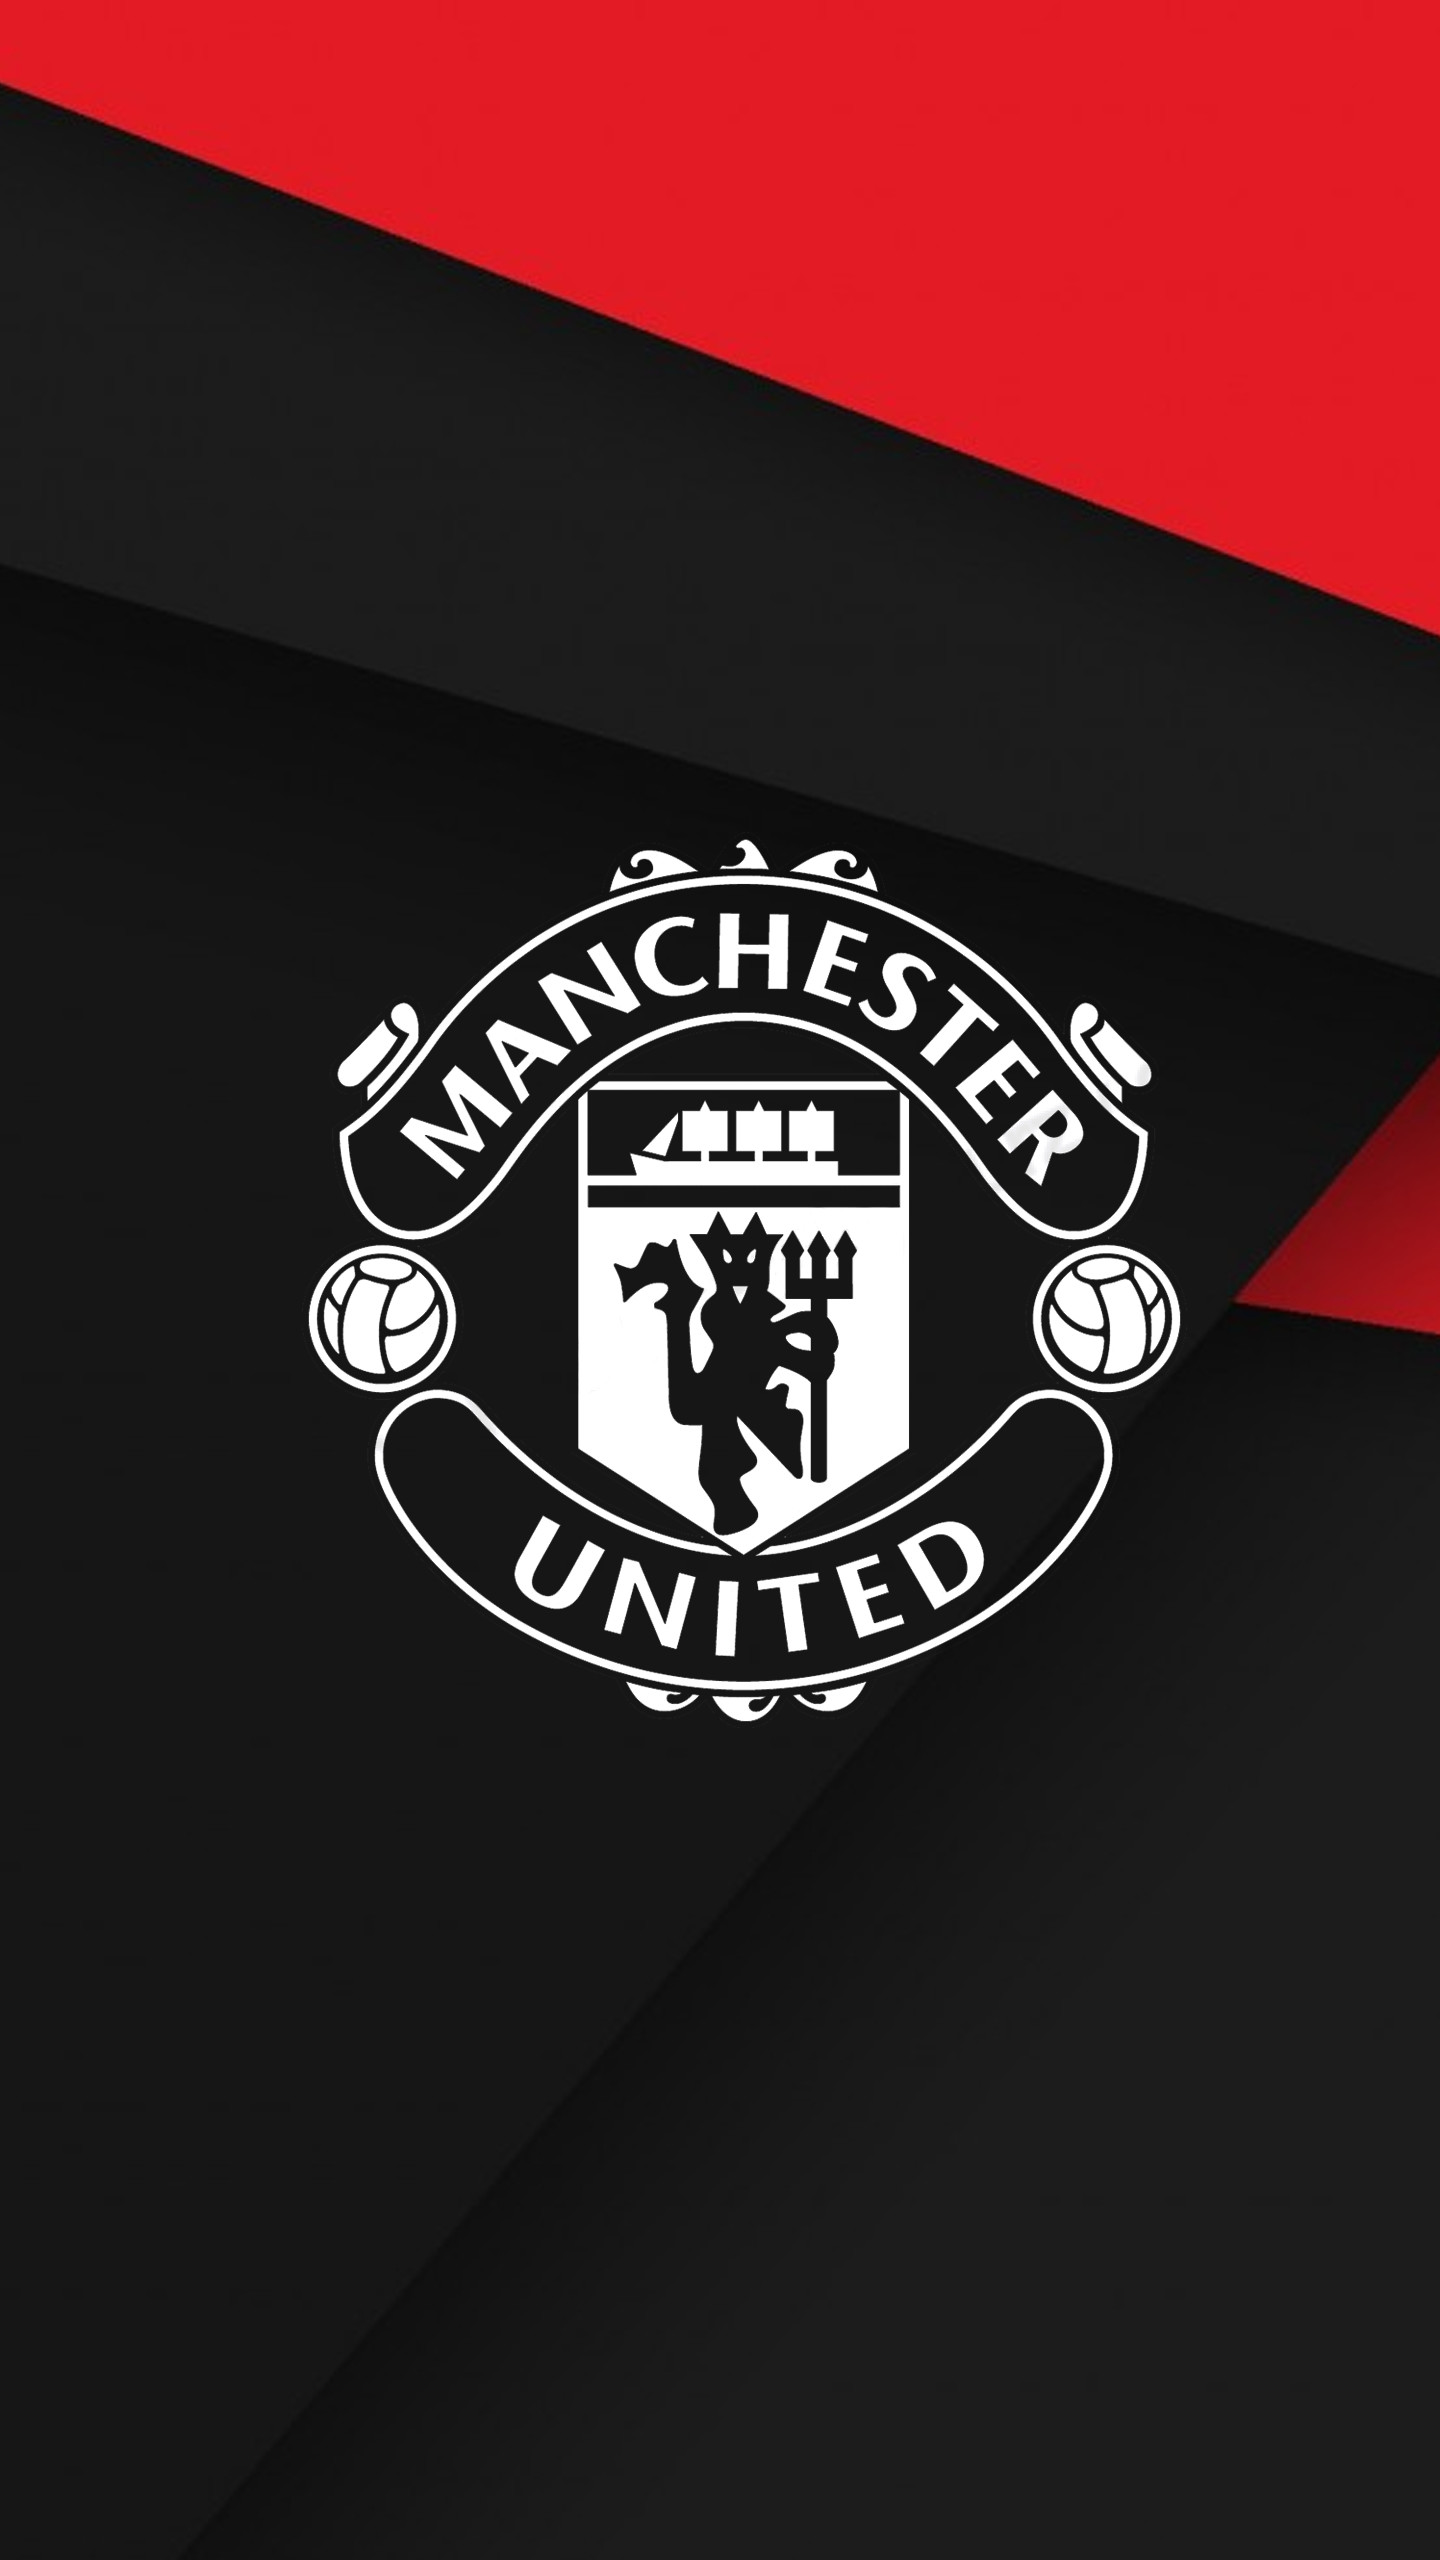 manchester united iphone wallpaper  66 images man utd logo 512x512 man utd logo wallpaper